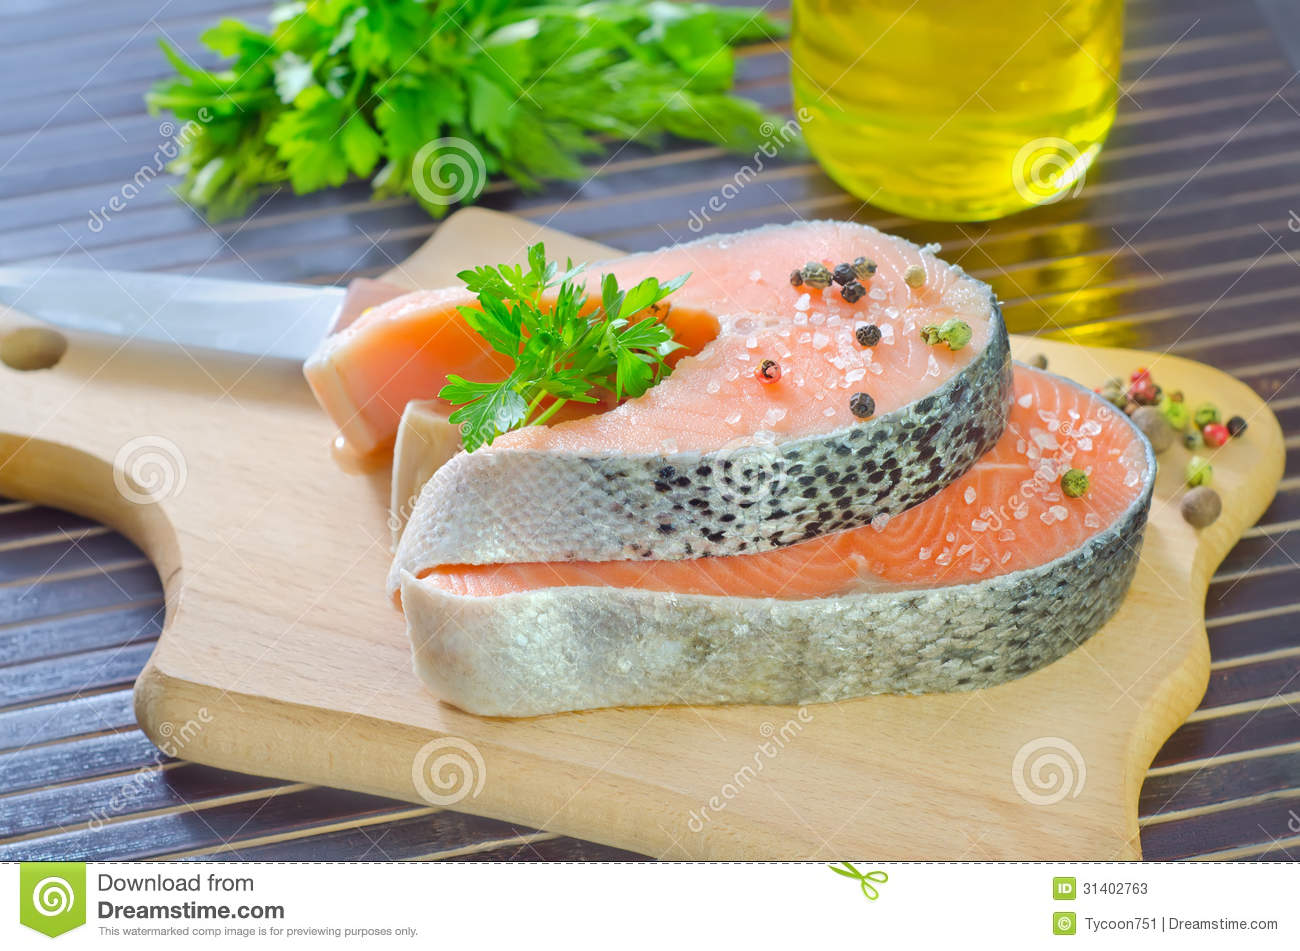 how to cut and freeze salmon